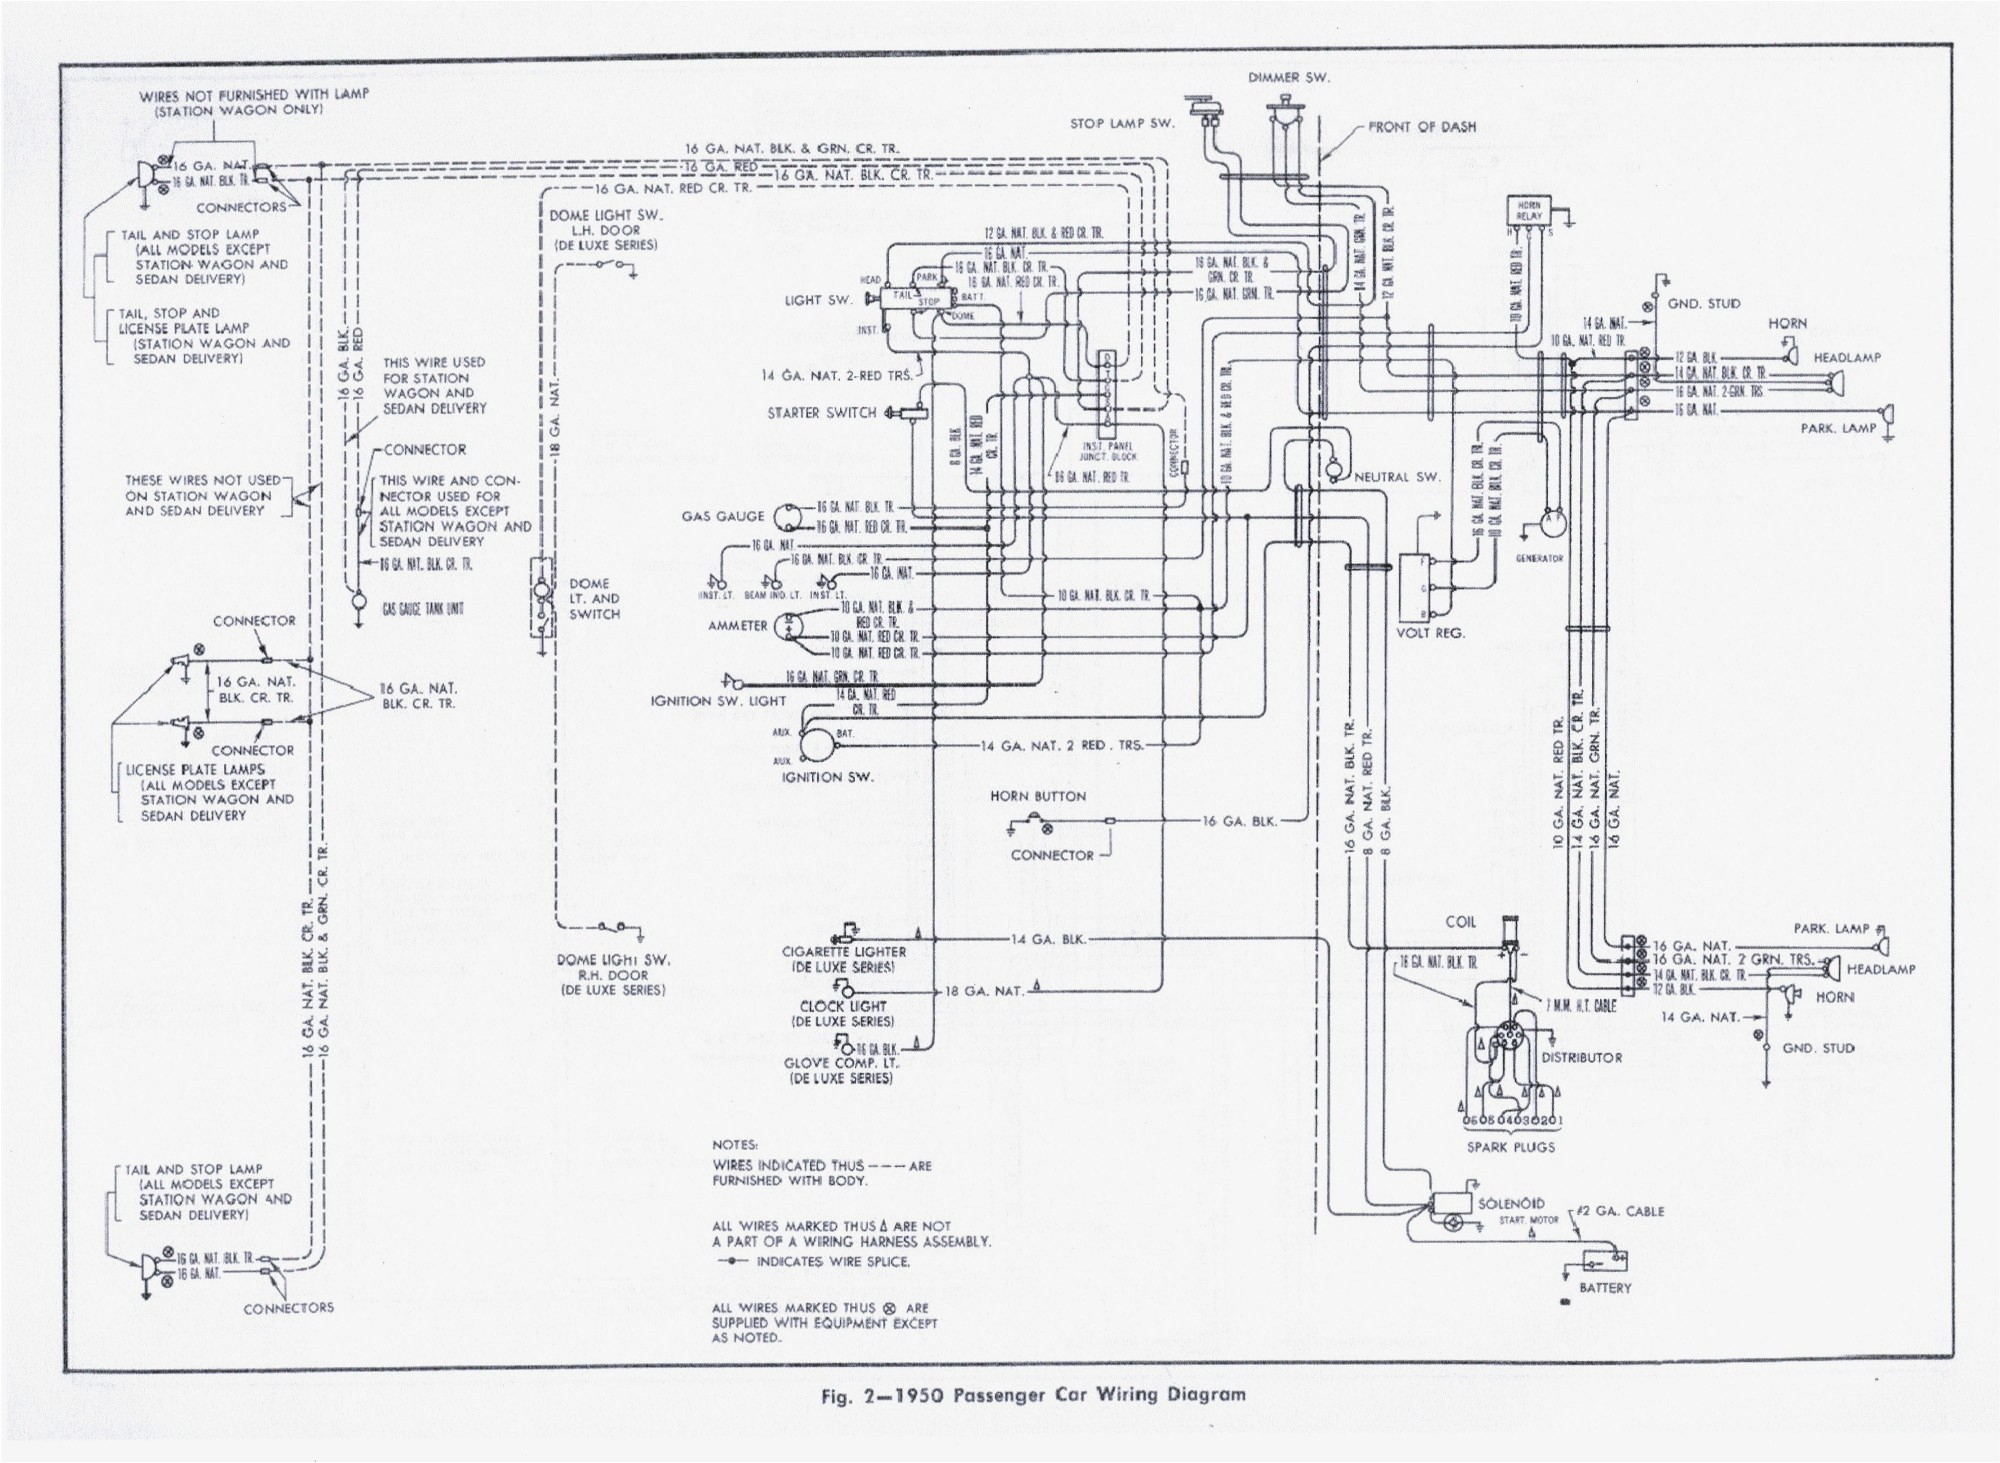 hight resolution of 1954 allstate scooter wiring diagram wiring library generic wiring diagram xingyue wiring diagram